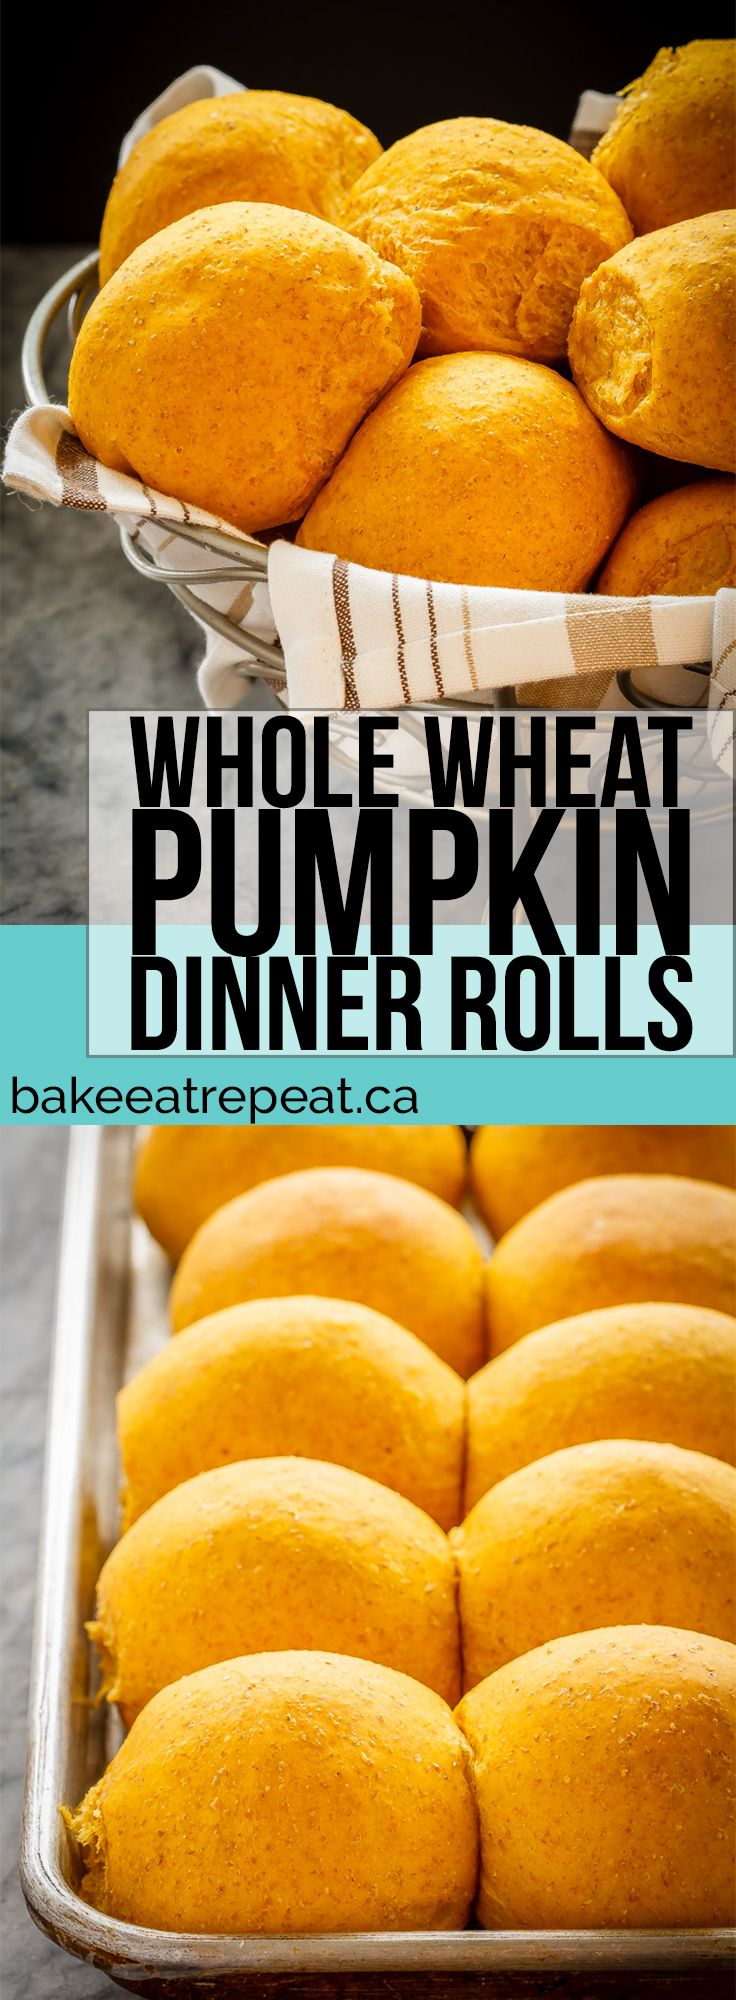 These whole wheat pumpkin dinner rolls are soft and fluffy and so easy to make. Plus they are amazing piled with turkey or ham for lunch!